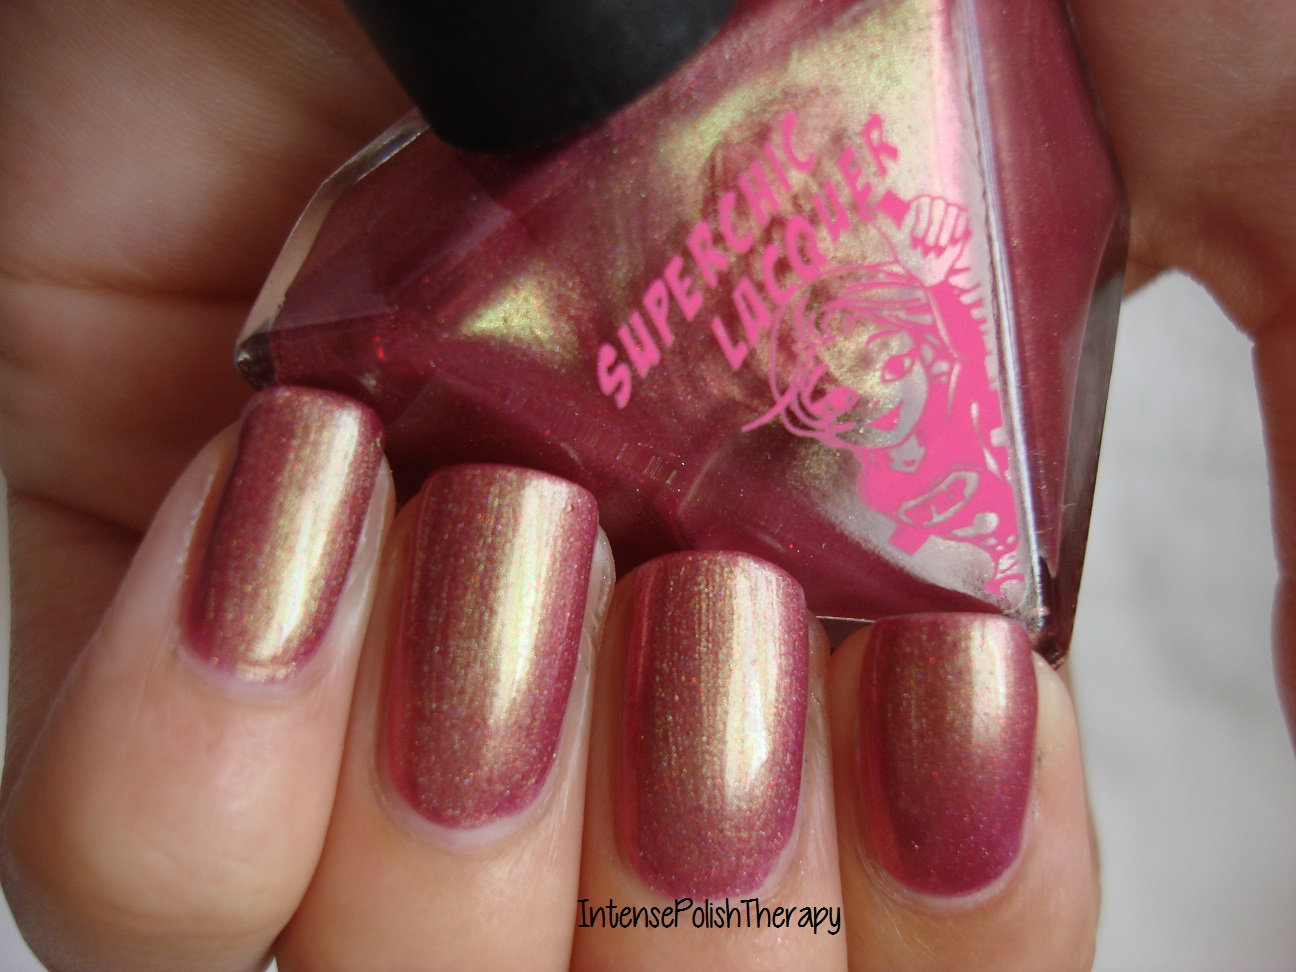 Superchic Lacquer - Golden Delicious Curse